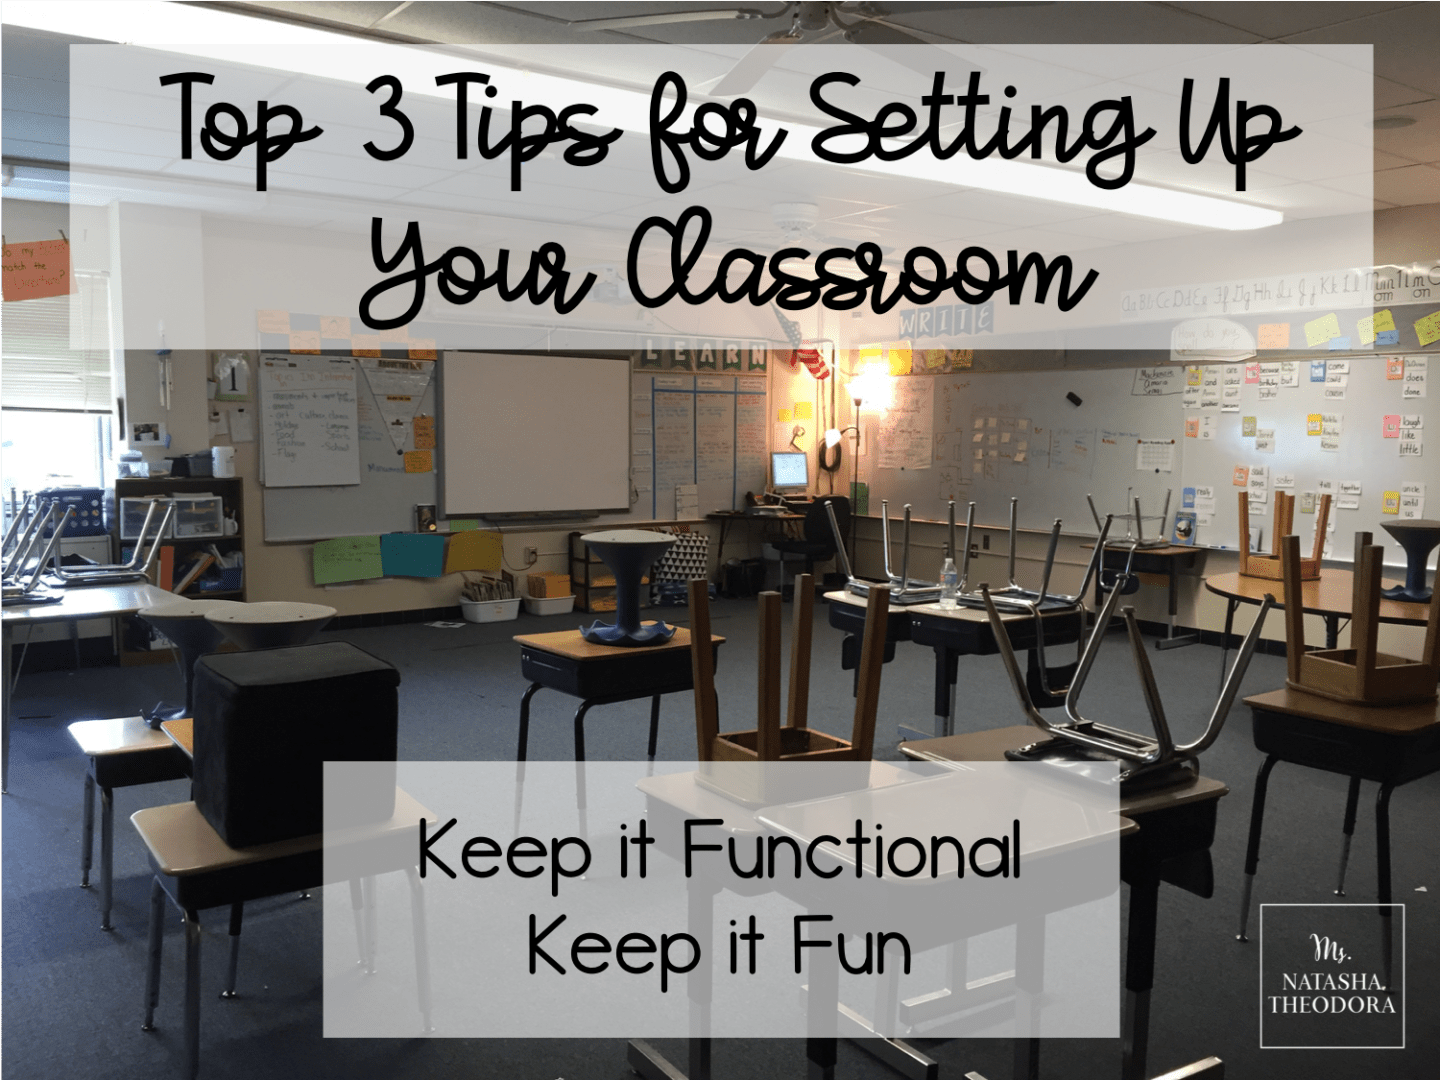 Top 3 Tips for Setting Up Your Classroom for Functionality and Fun!